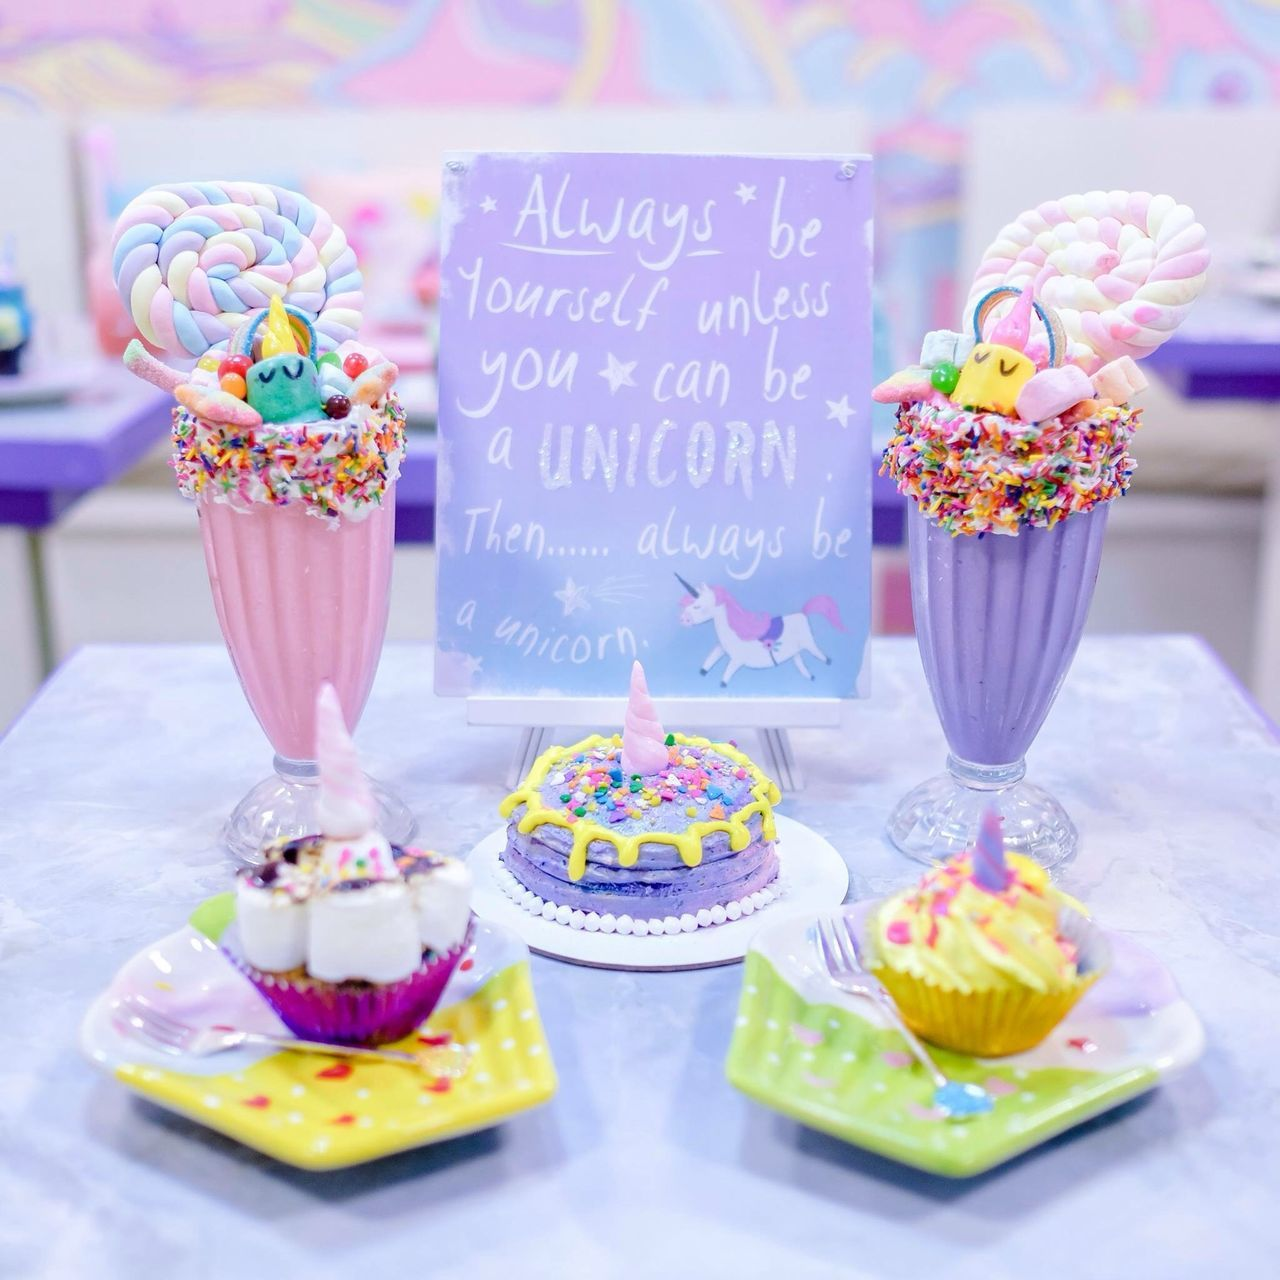 Birthday Cake Cake Candy Celebration Cupcake Dessert Dessert Topping Food Food And Drink Freshness Indulgence Multi Colored No People Party - Social Event Pastel Pastel Power Ready-to-eat Sprinkles Sweet Food Table Temptation Text Unicorn Unicorn Cafe Wedding Cake